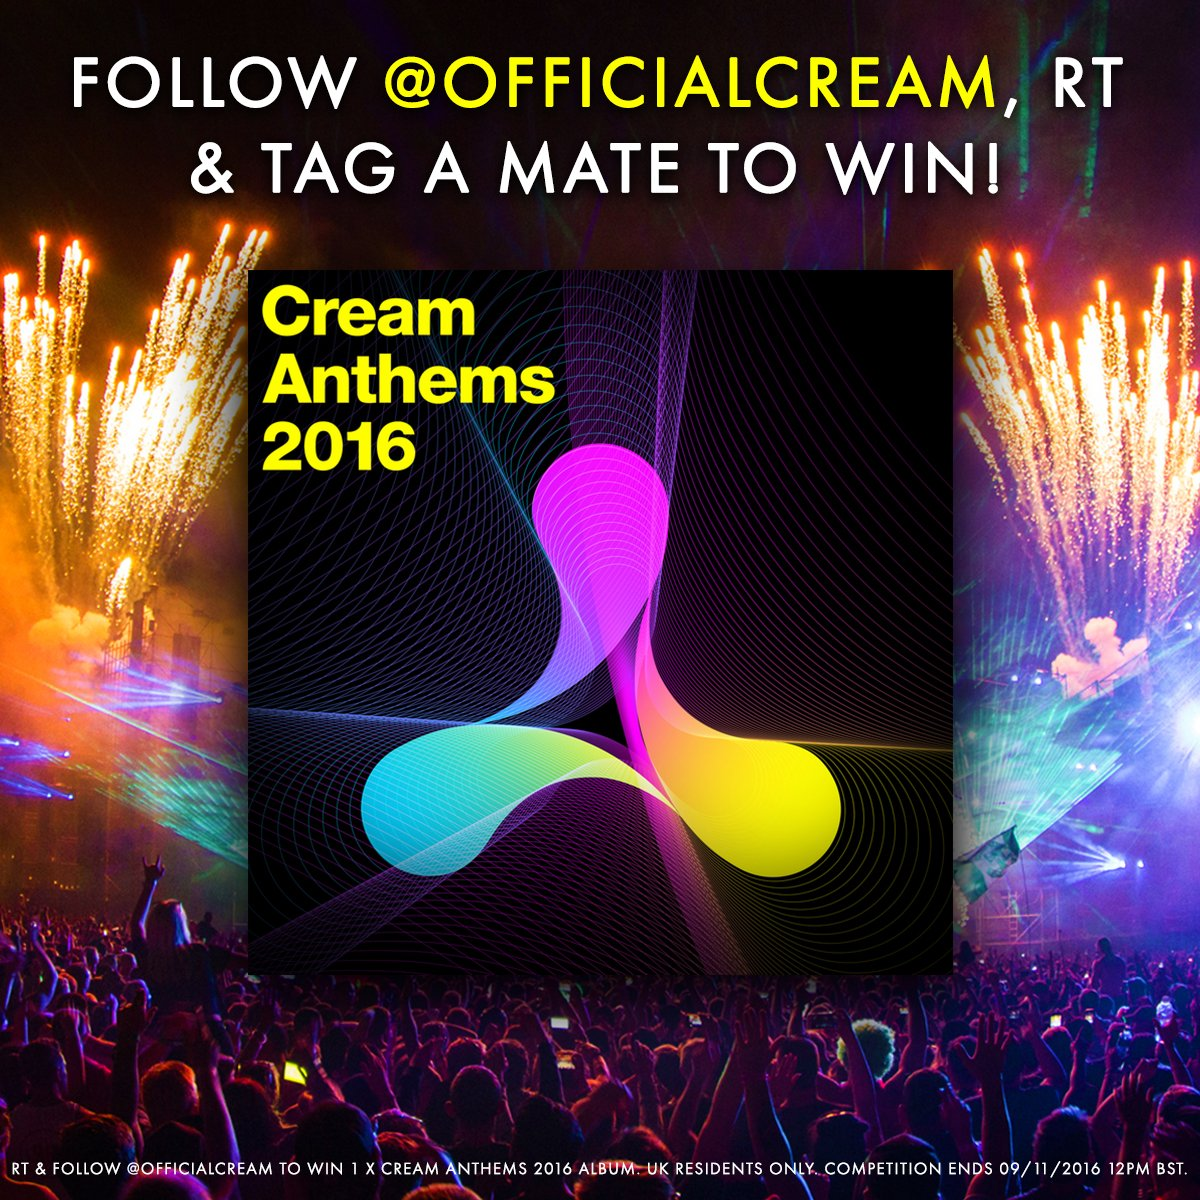 #WinItWednesday | RT, Follow @officialcream & tag a mate to #WIN a Cream Anthems Album!